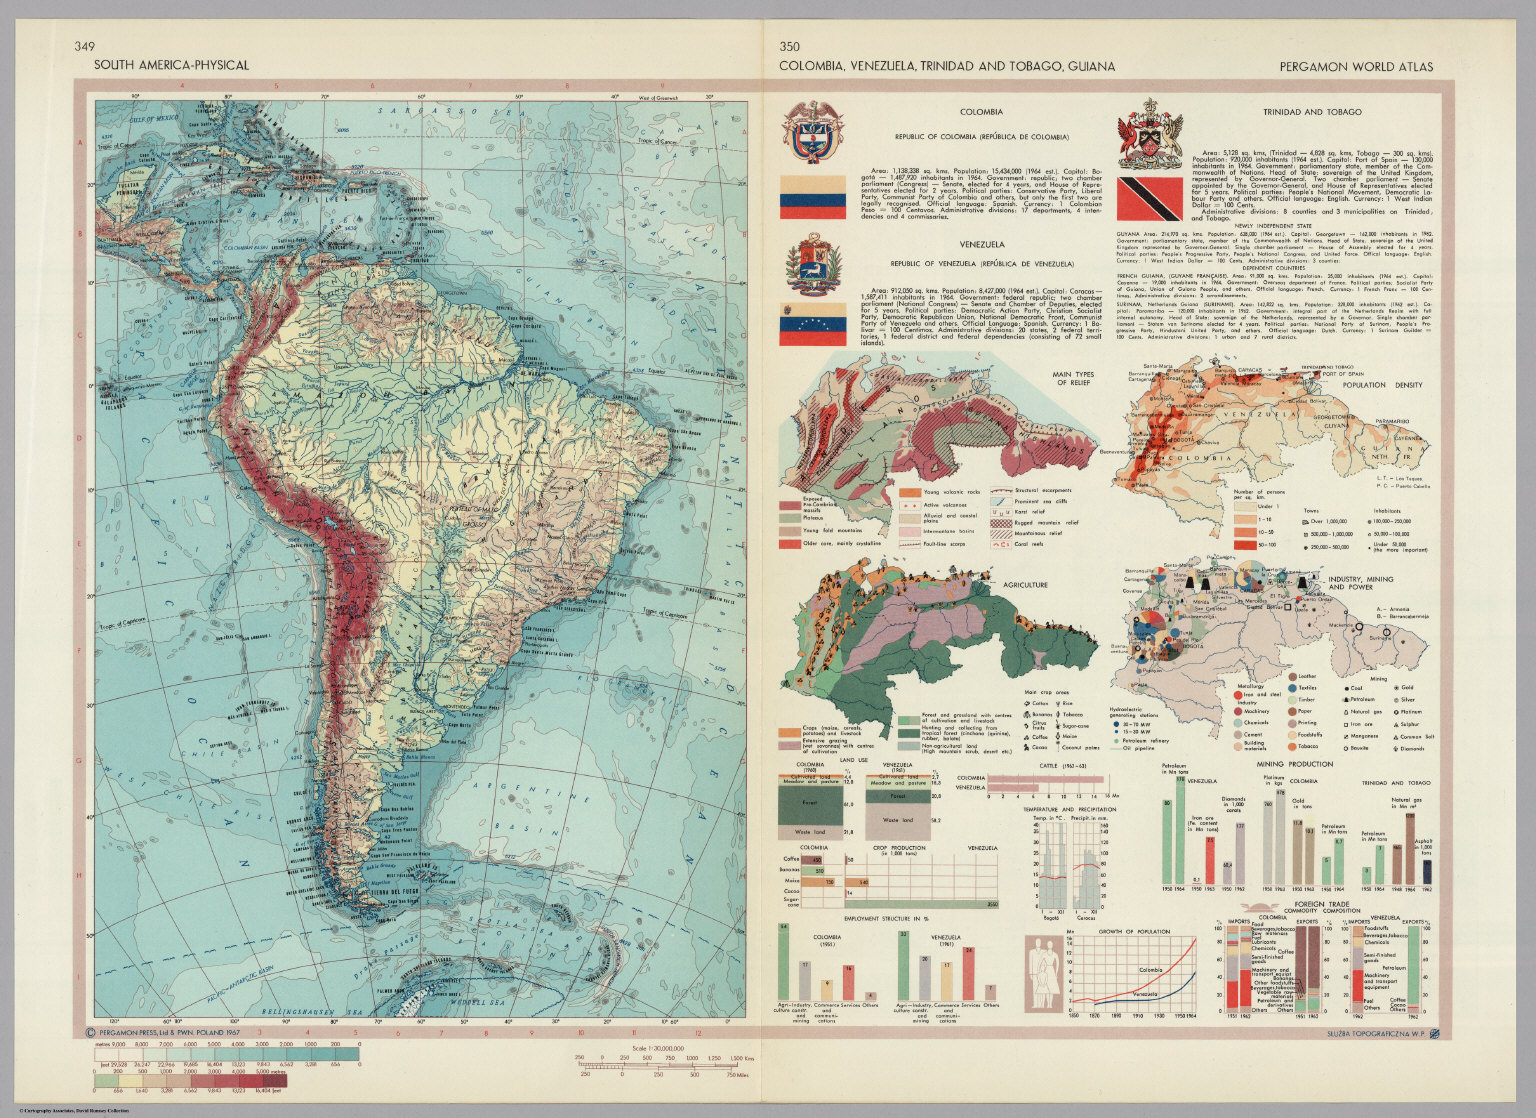 South America Physical Colombia Venezuela Trinidad And Tobago - Physical of map venezuela